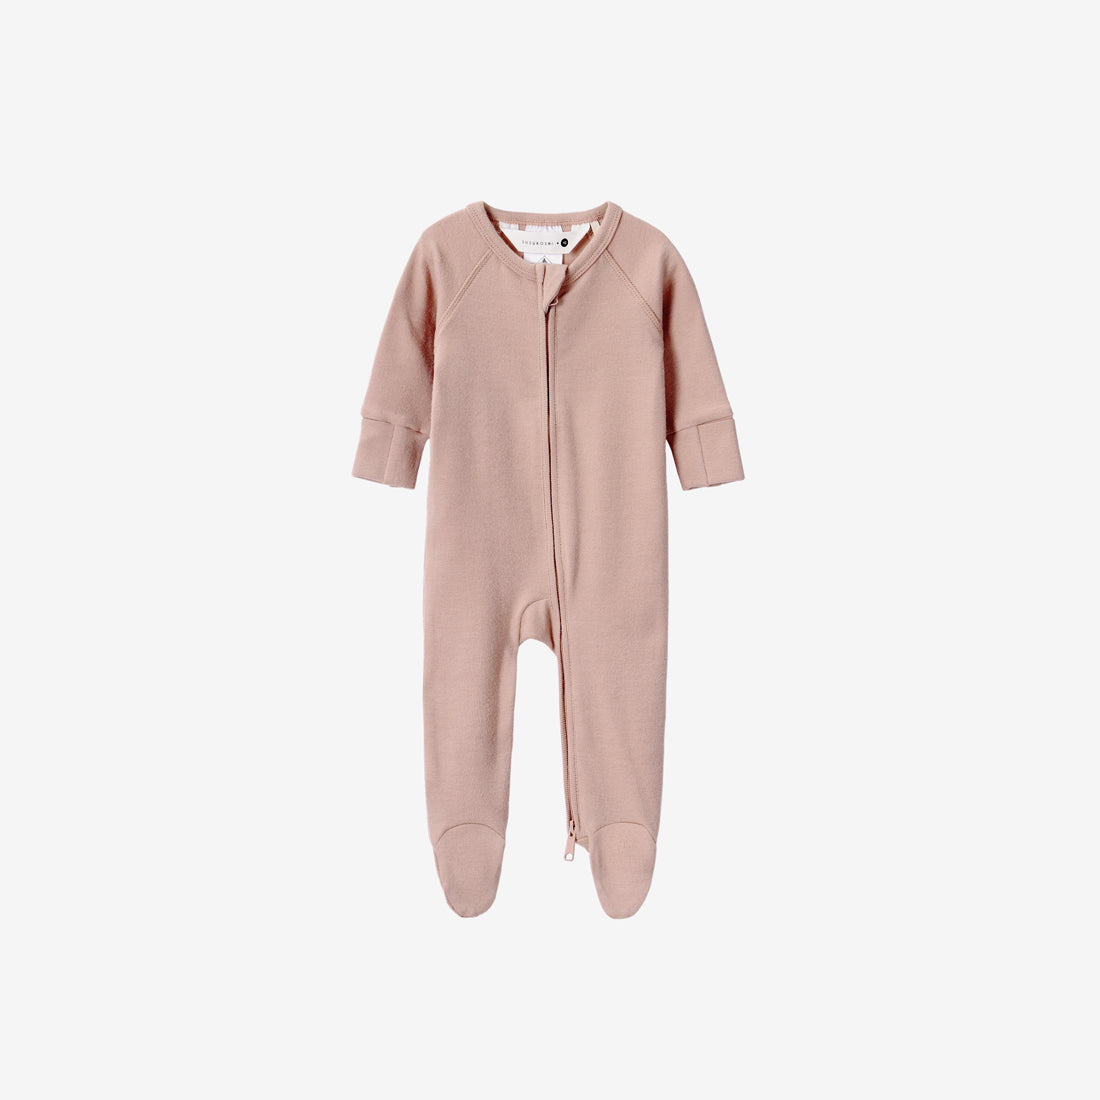 Organic Cotton Footed Zip Growsuit - Tan